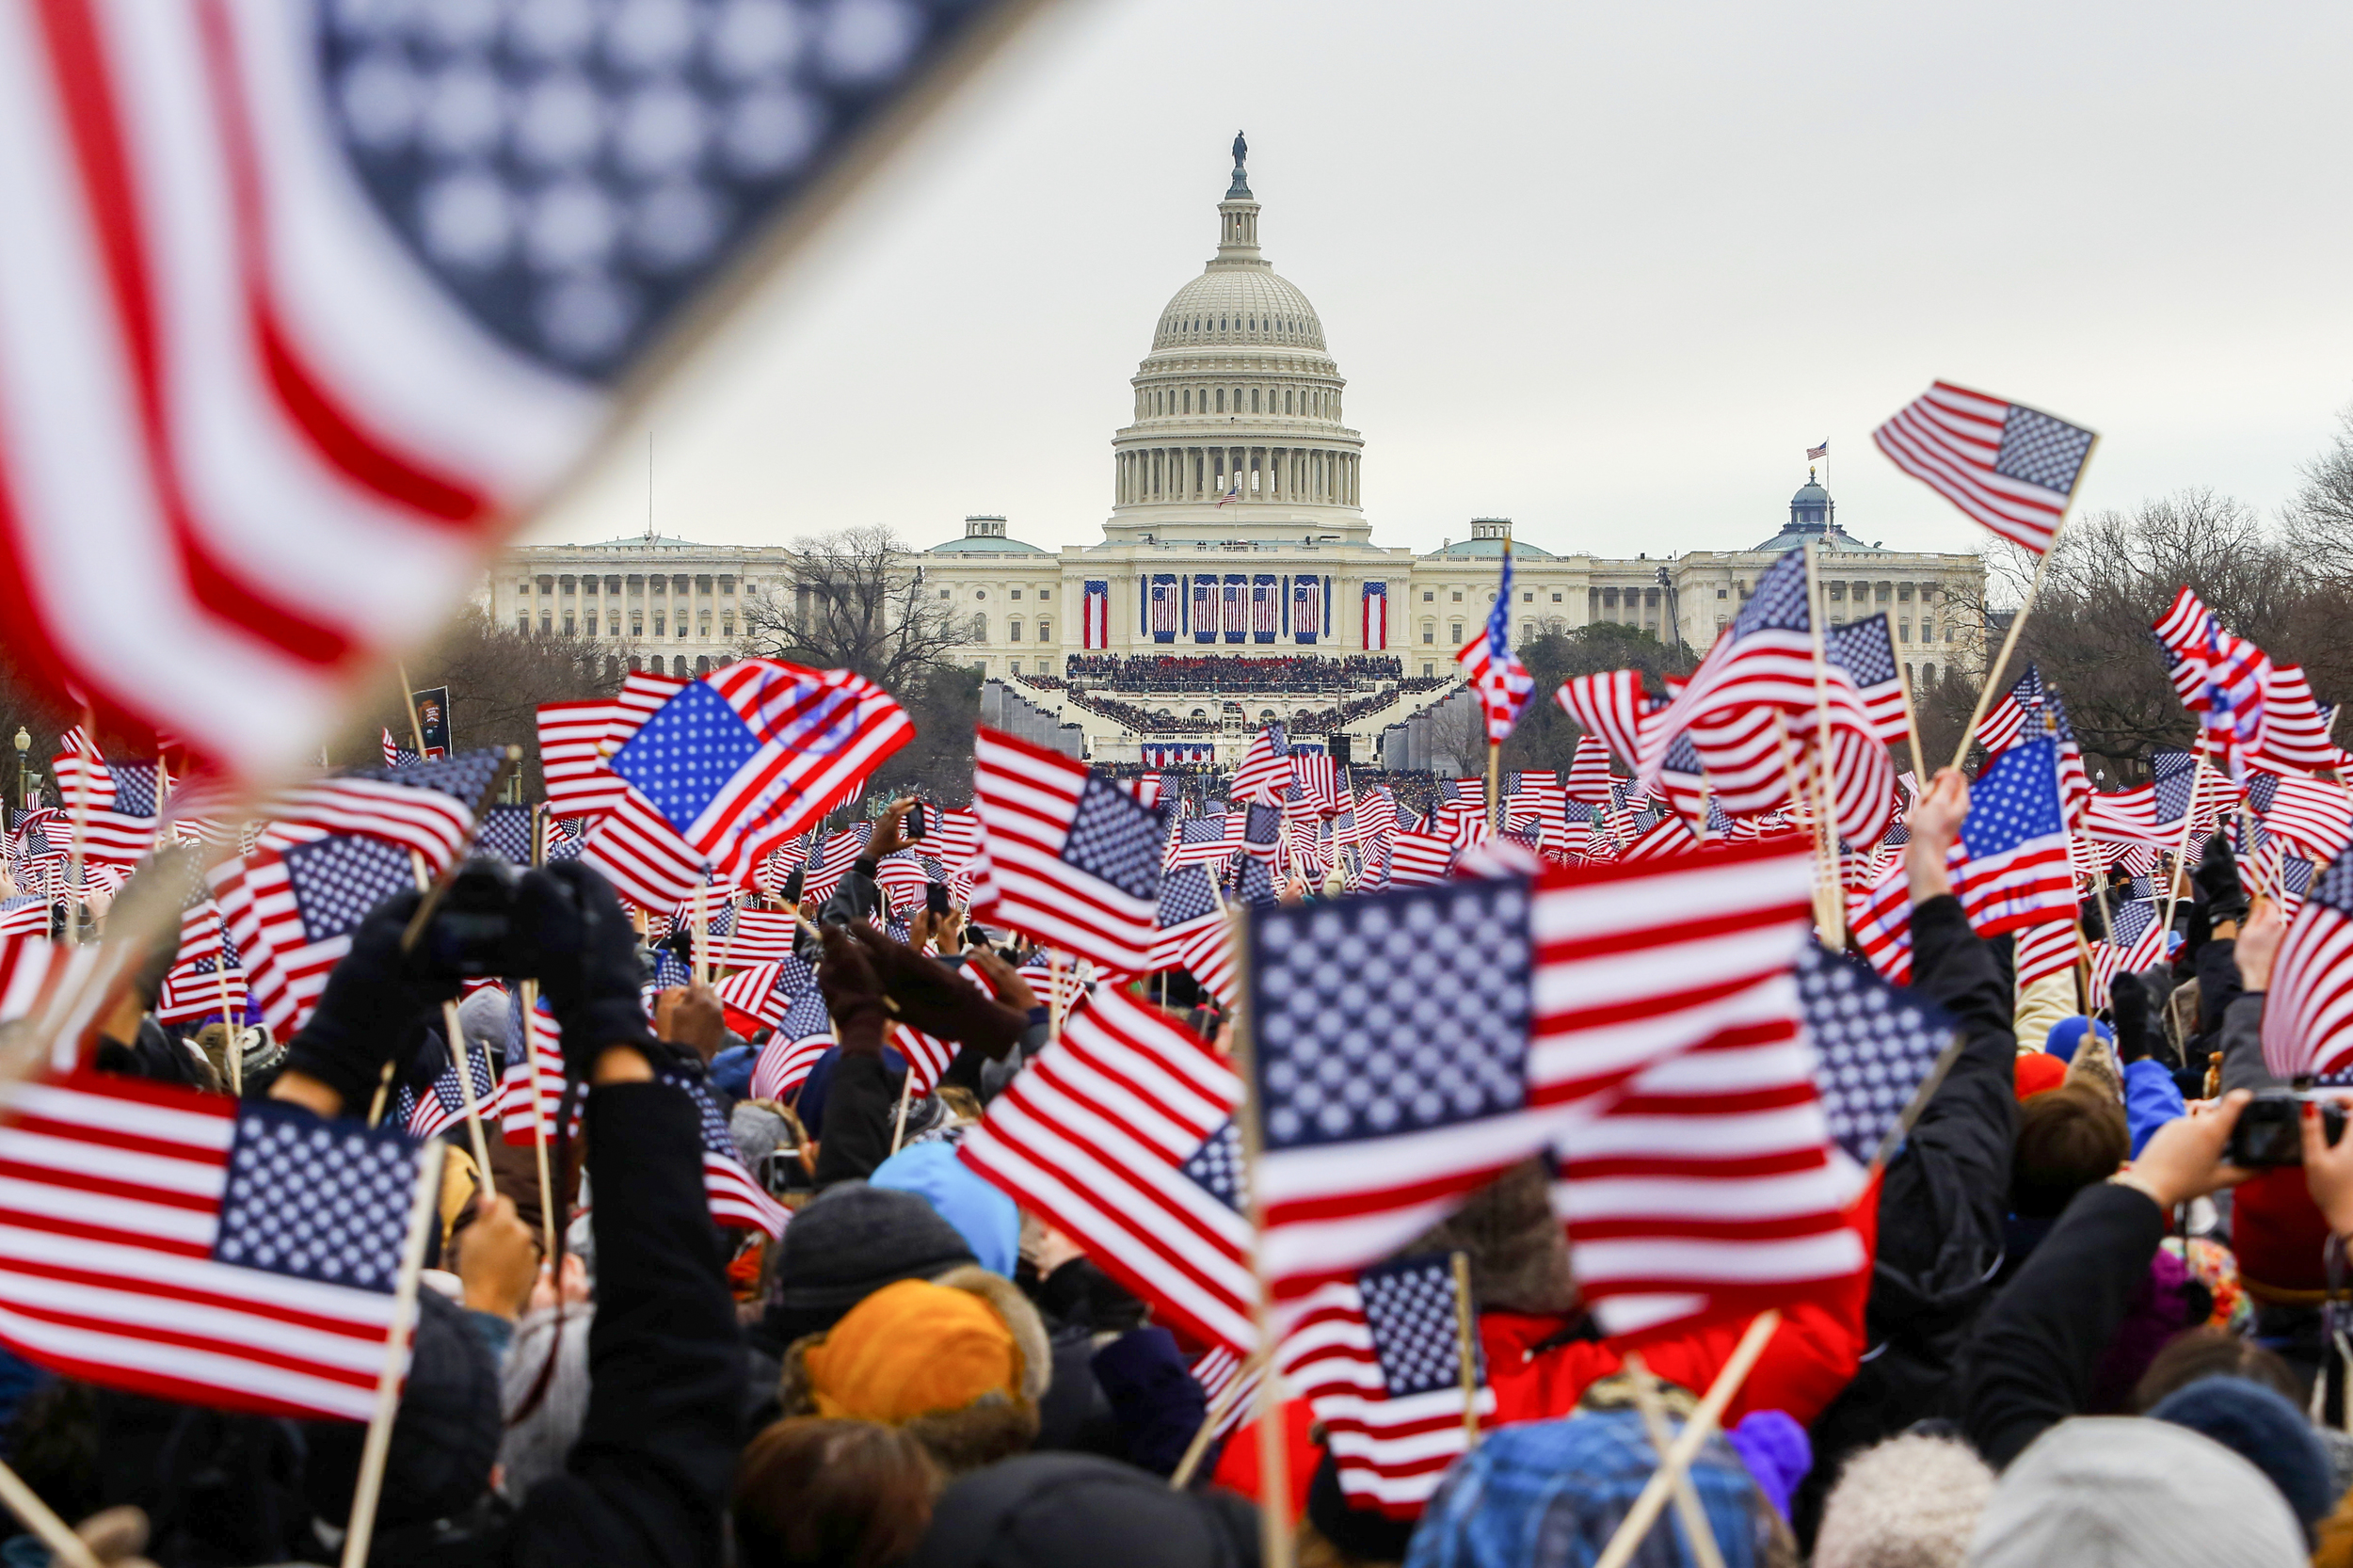 Patrons wave flags at the National Mall as President Barack Obama was introduced at his ceremonial swearing-in at the U.S. Capitol during the 57th Presidential Inauguration in Washington, Jan. 21, 2013.